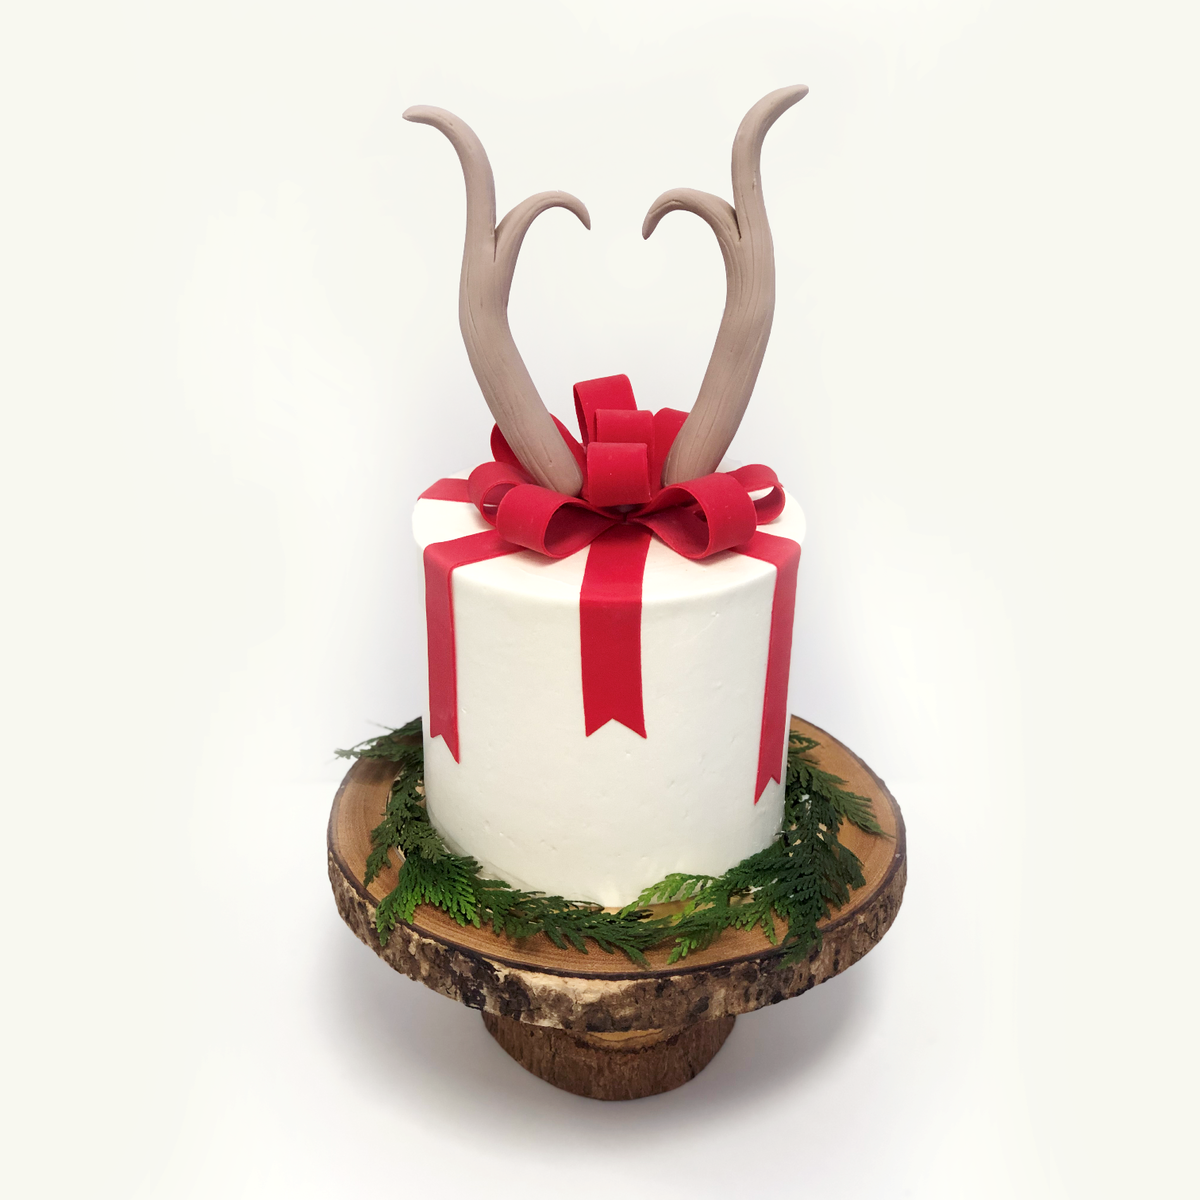 Whippt - Auction Cake Dec 14